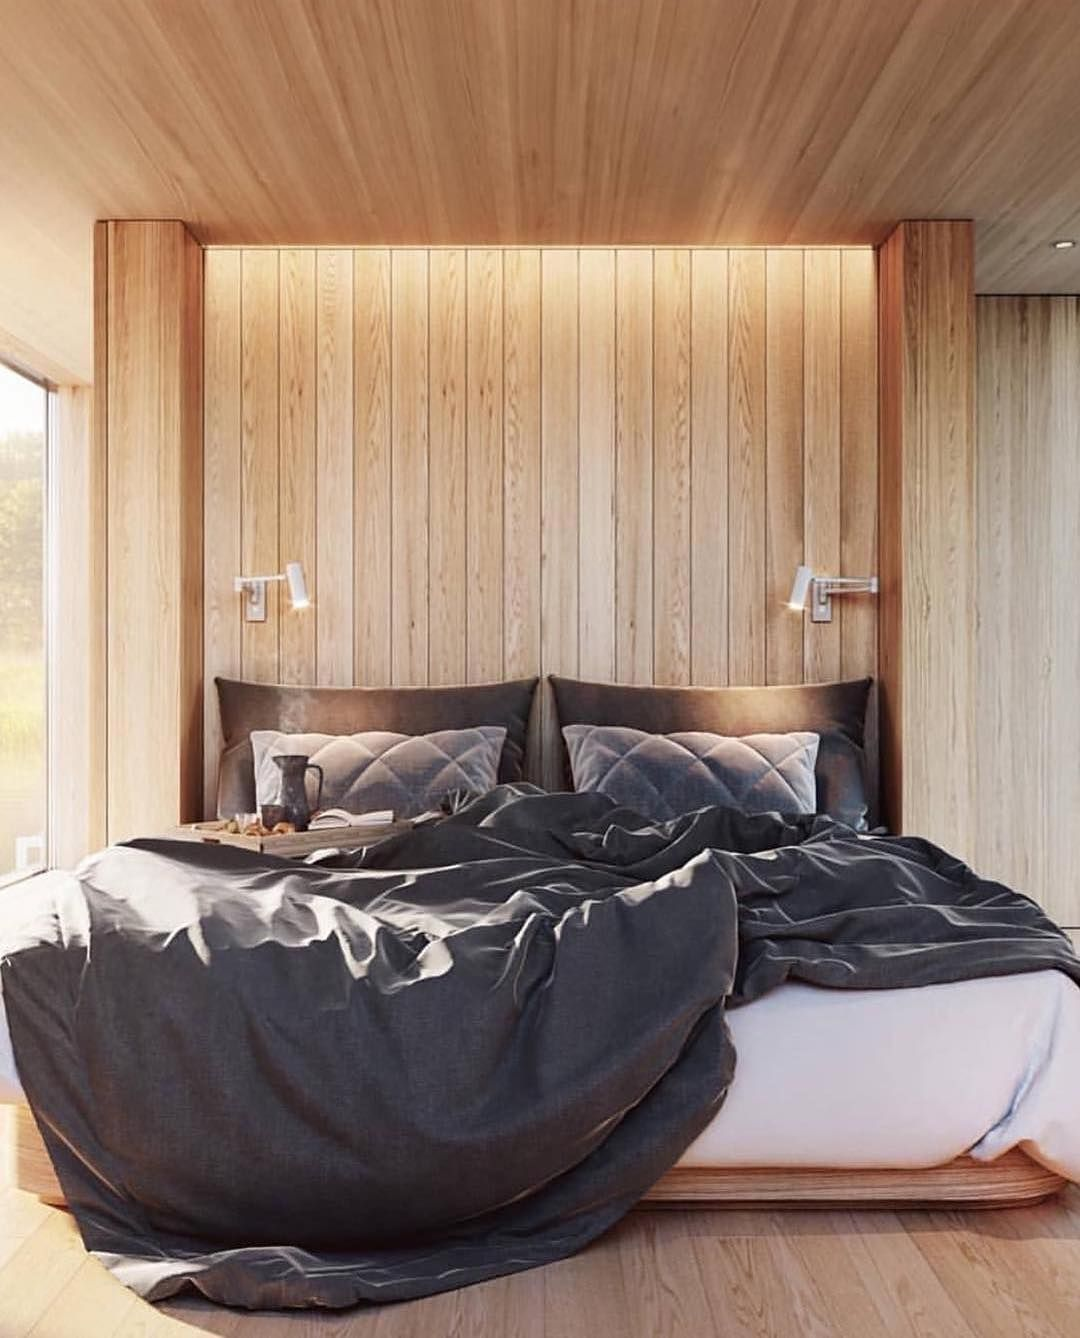 Home Interior Decor 2019 With Images Luxury Bedroom Furniture